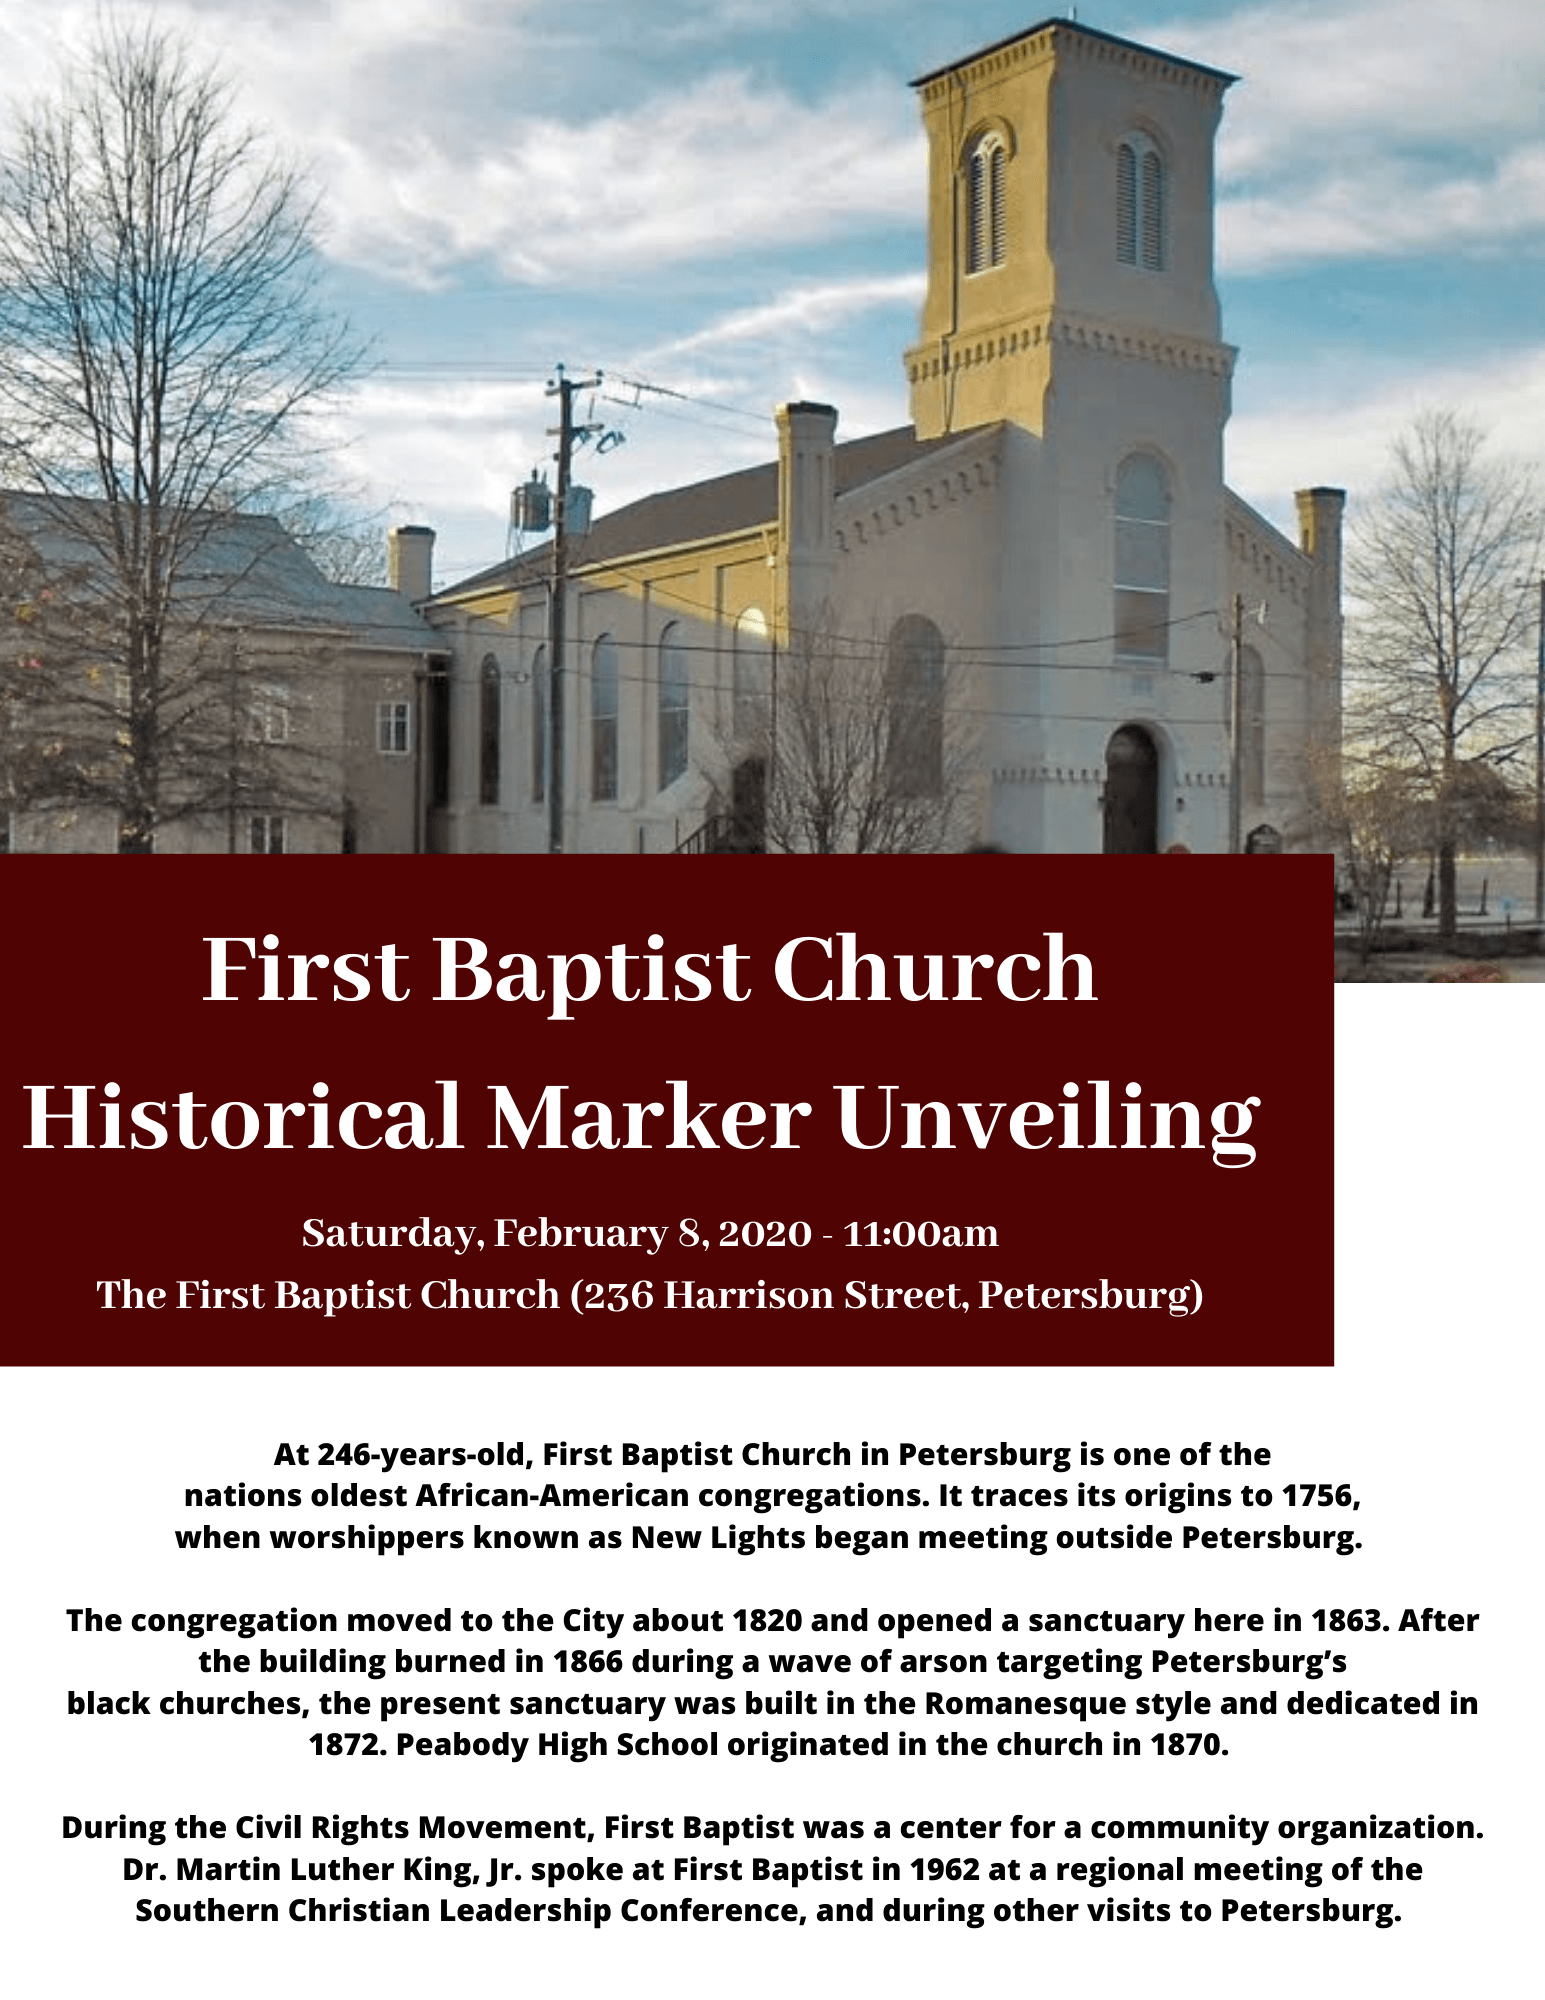 First baptist church historical marker unveiling